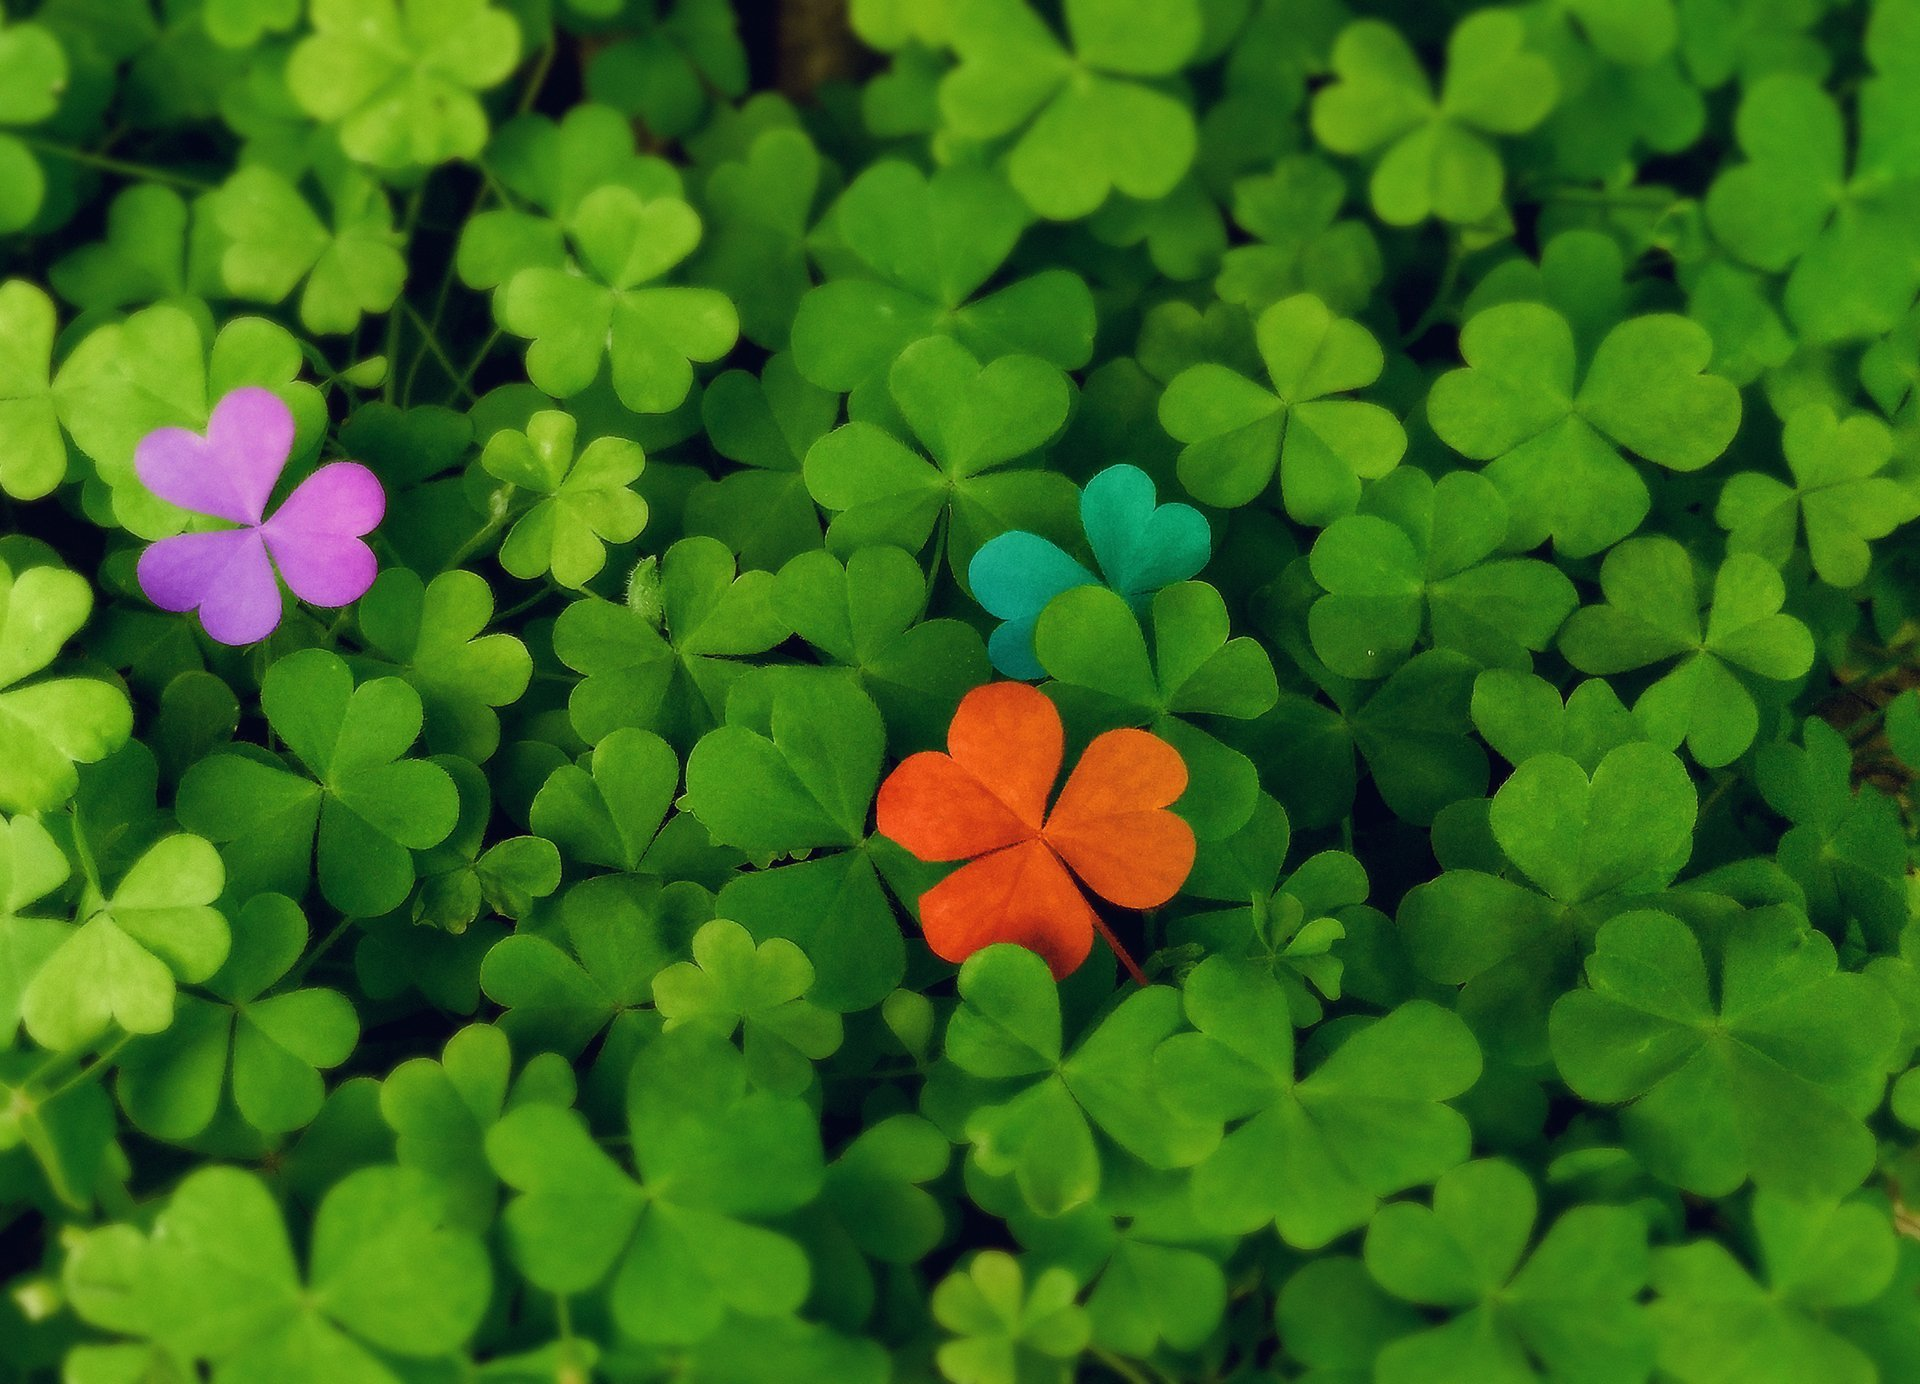 Read more on On Shamrocks and Finding Your Brand's Voice